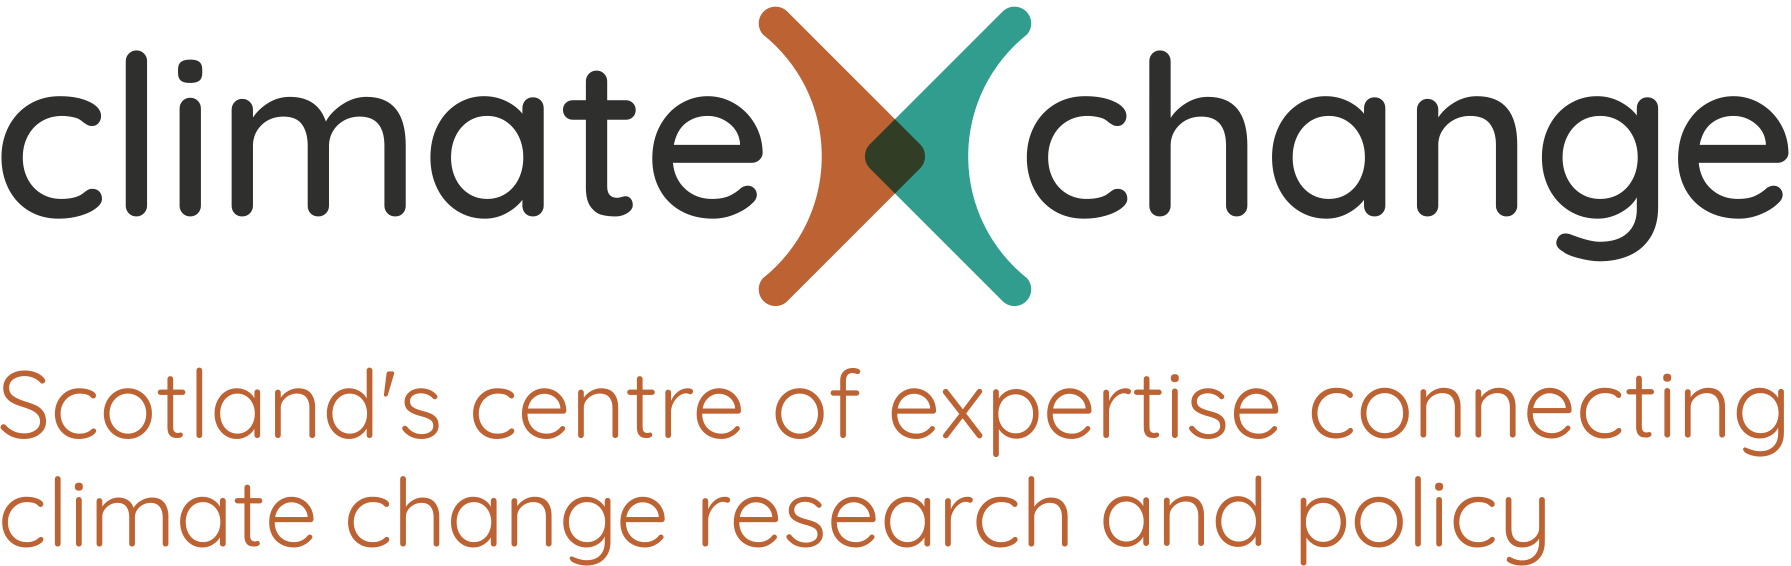 ClimateXChange provides independent advice, research and analysis to support the Scottish Government as it develops and implements policies on adapting to the changing climate and the transition to a low carbon society.